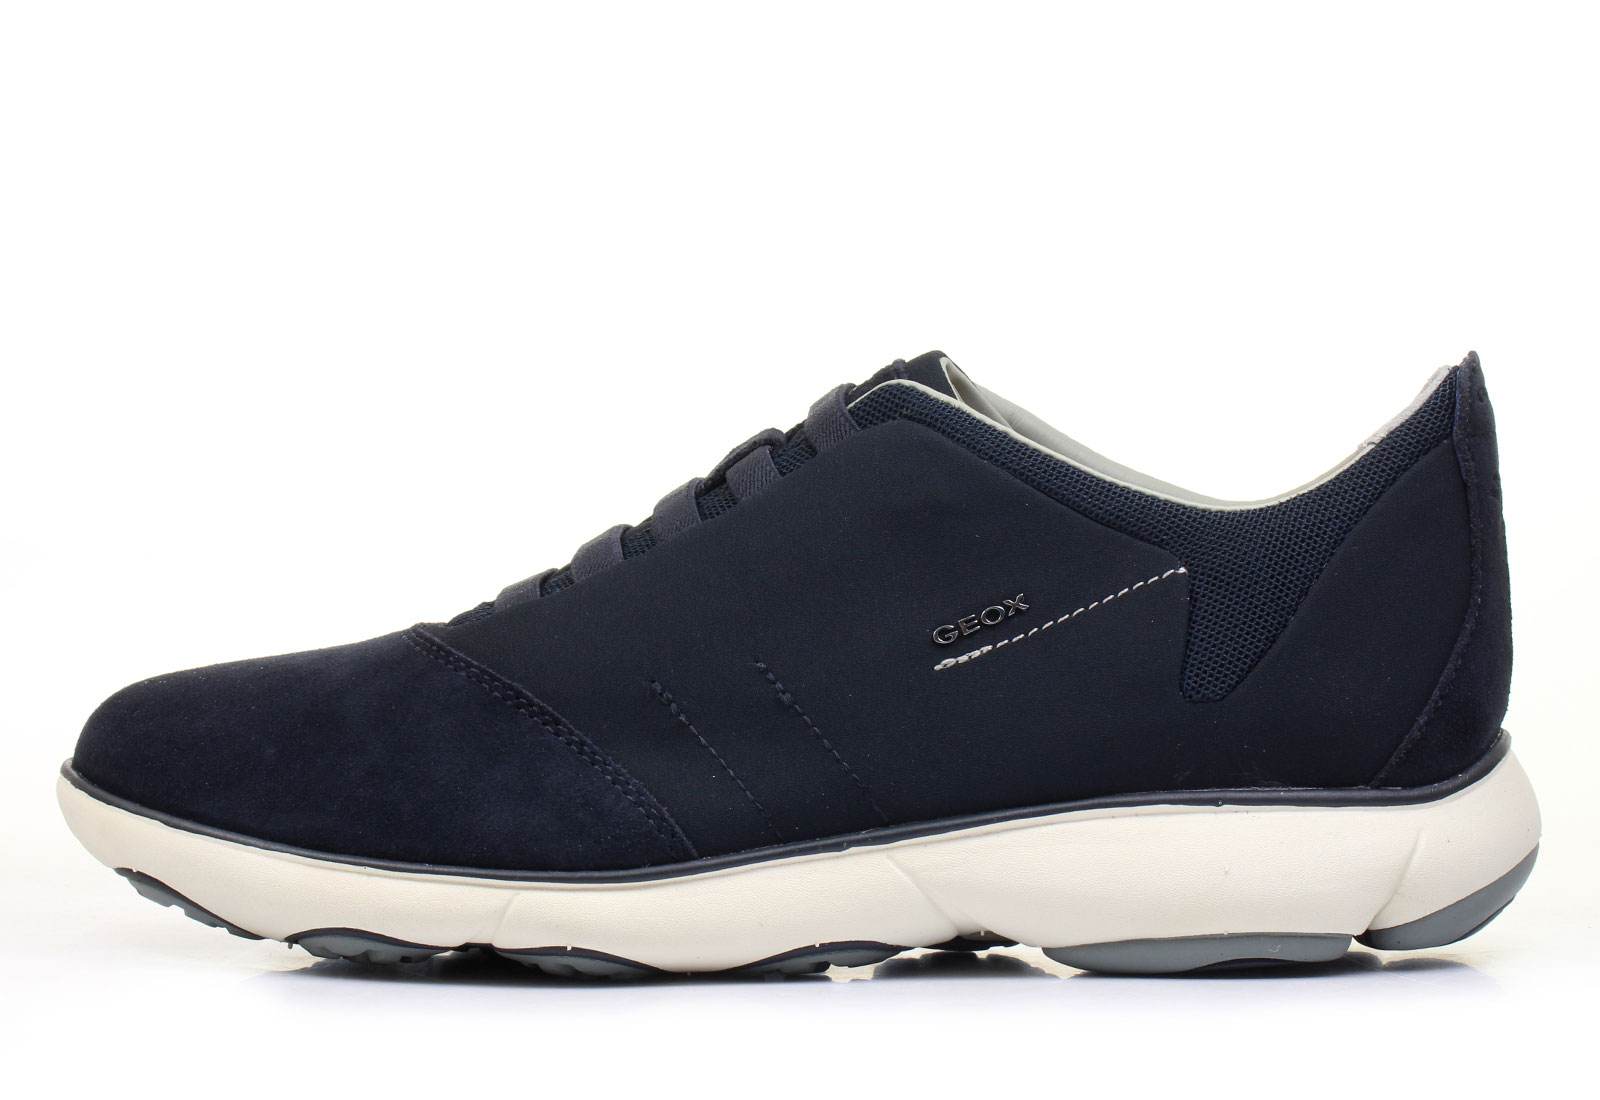 Geox Shoes Online